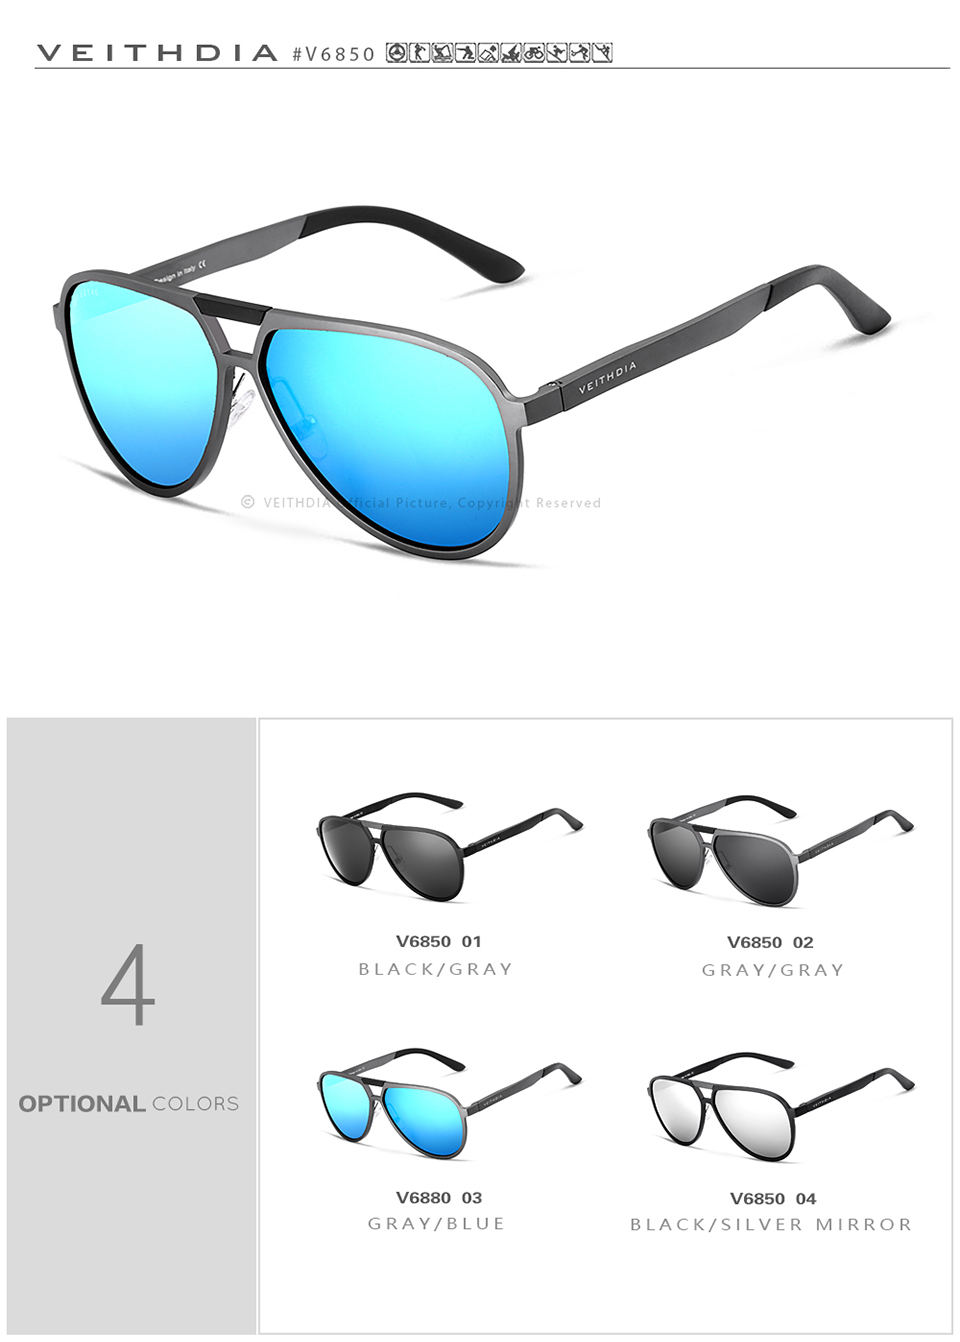 HTB167PEmQfb uJjSsrbq6z6bVXaF - VEITHDIA Brand Mens Aluminum Magnesium Sunglasses Polarized UV400 Lens Eyewear Accessories Male Sun Glasses For Men/Women V6850